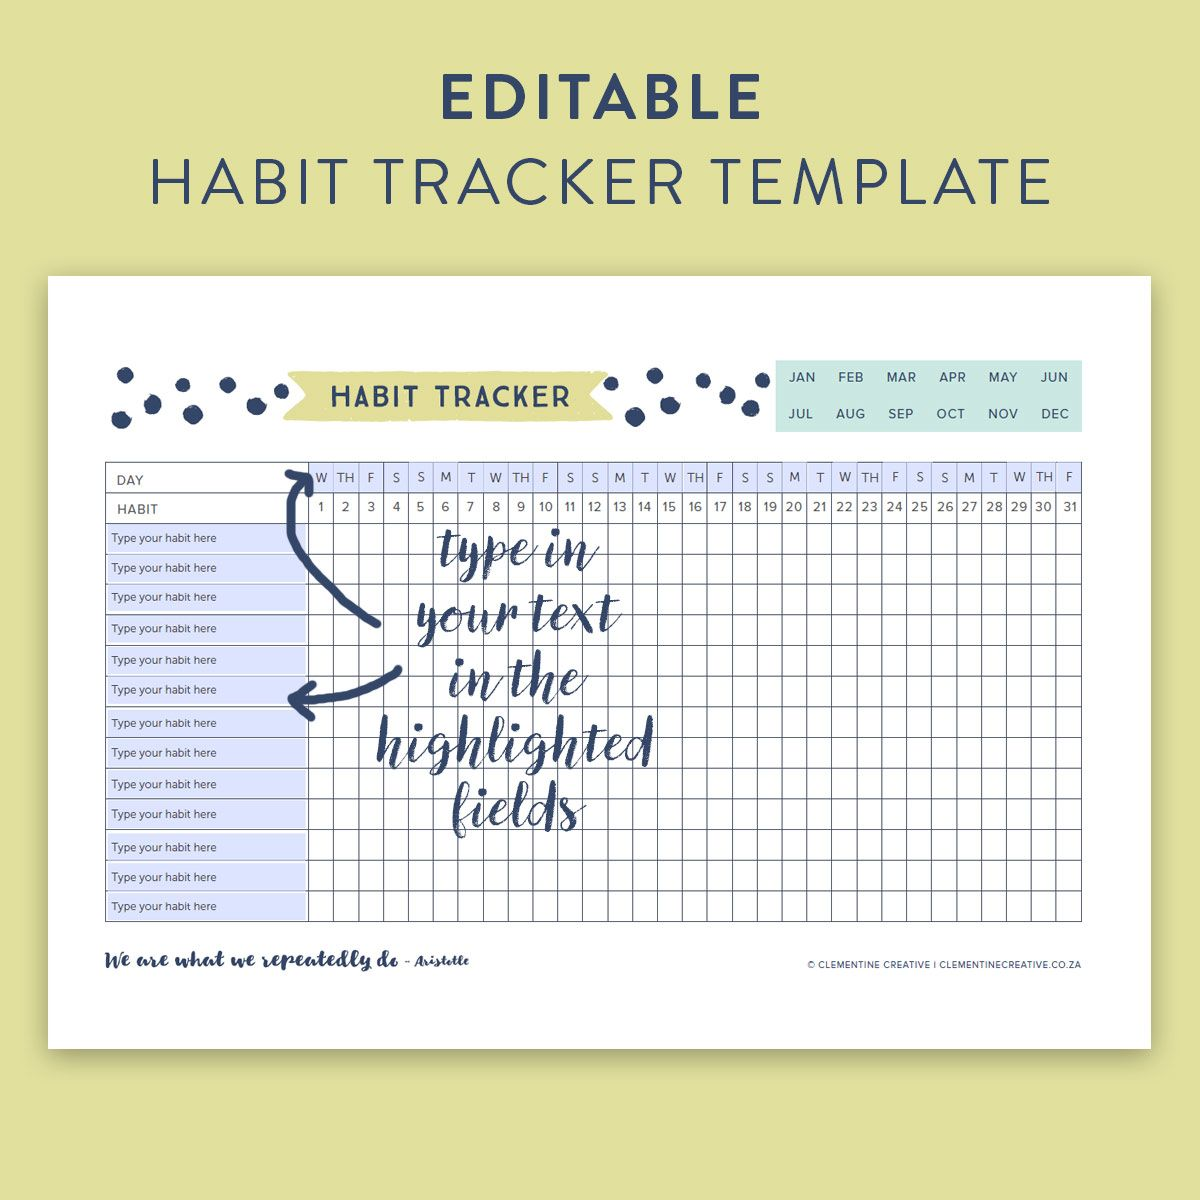 Printable Editable Habit Tracker